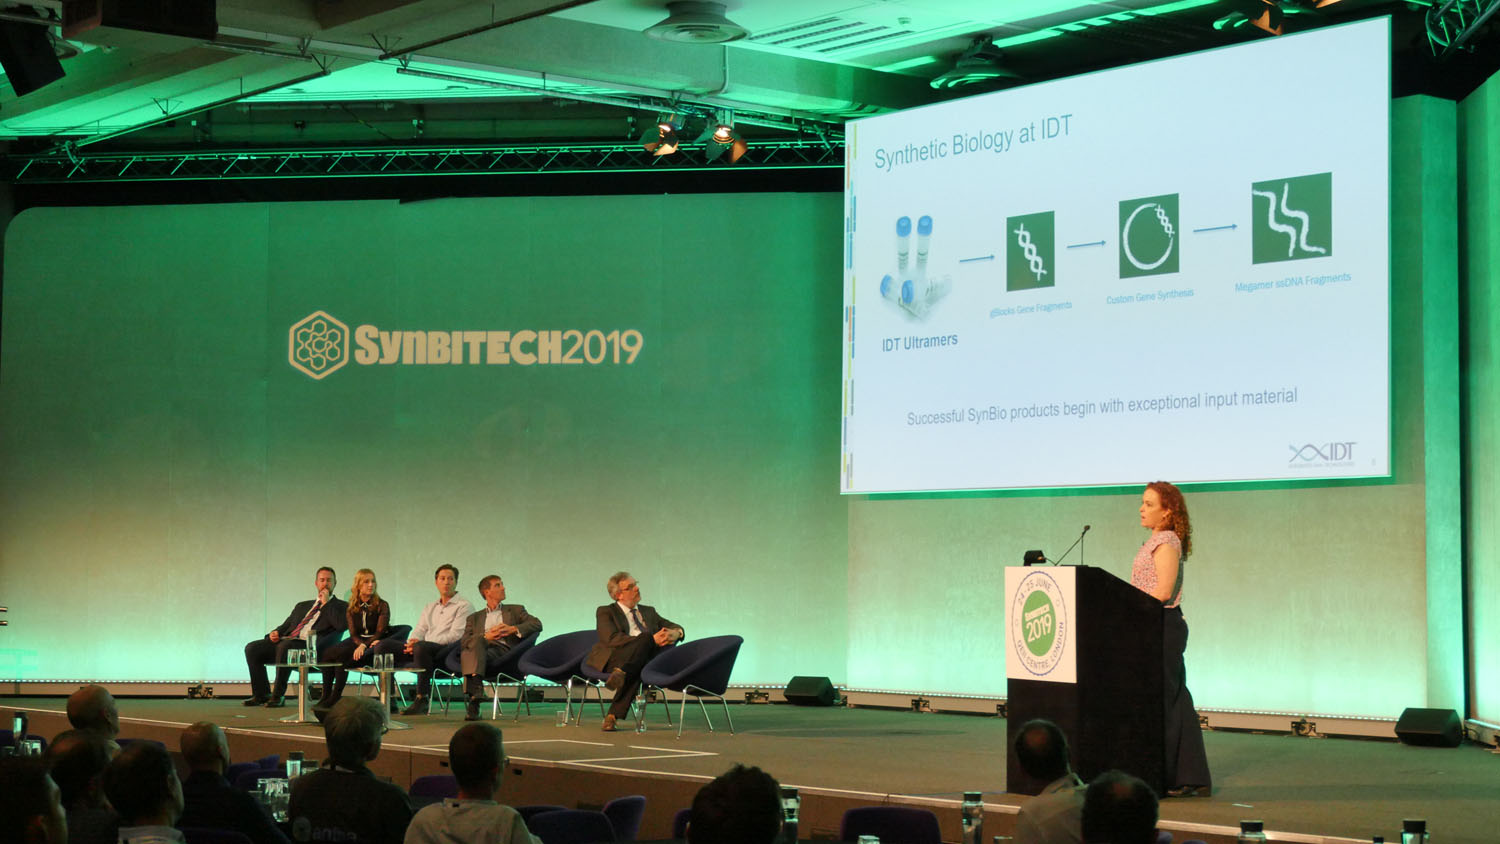 Elizabeth Nickerson, Director of Business Development - Synthetic Biology, Integrated DNA Technologies presents at SynbiTECH 2019